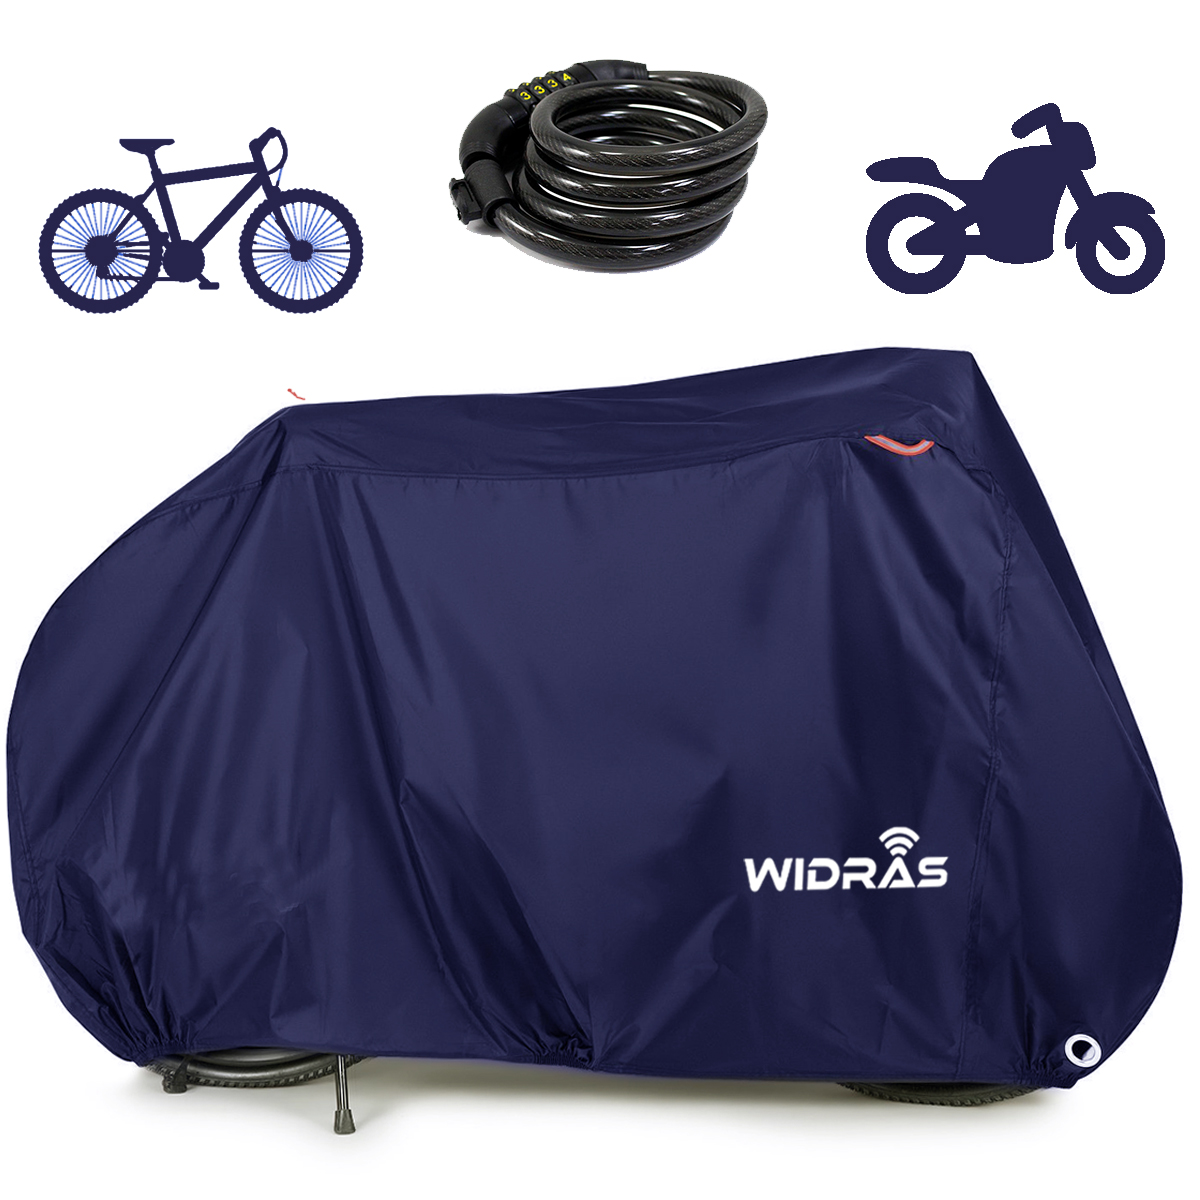 Widras Bicycle and Motorcycle Cover for Outdoor Storage Bike Heavy Duty Rip stop Material, Waterproof & Anti-UV Protection from All Weather Conditions for Mountain & Road Bikes